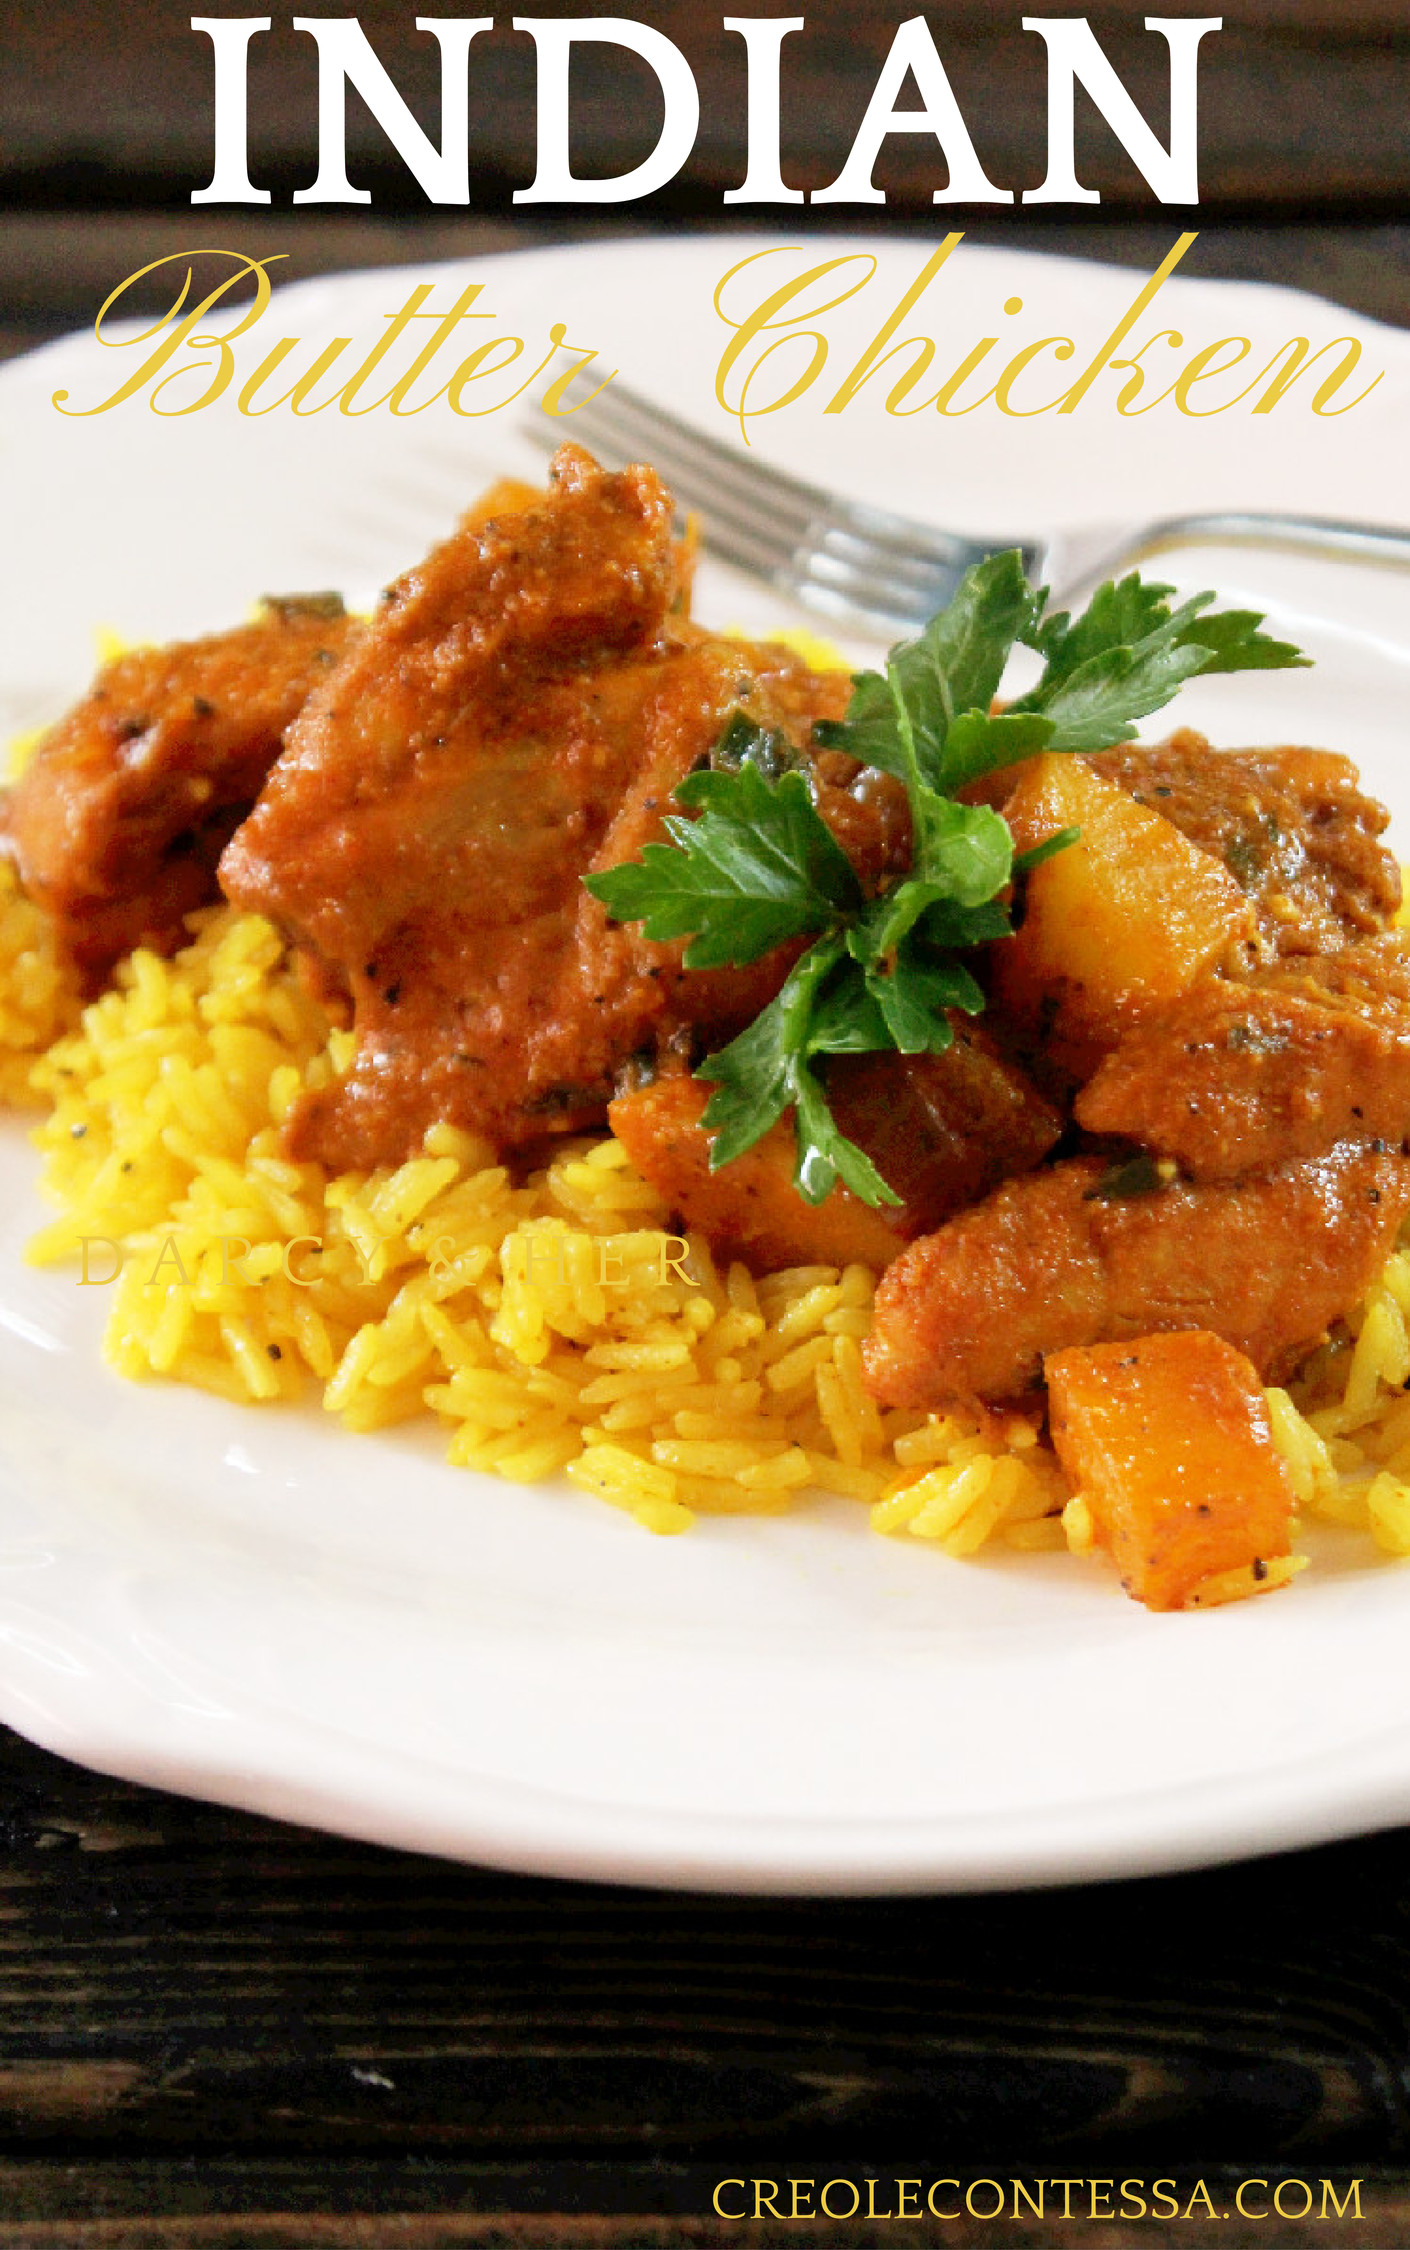 Indian Butter Chicken With Yellow Rice Creole Contessa